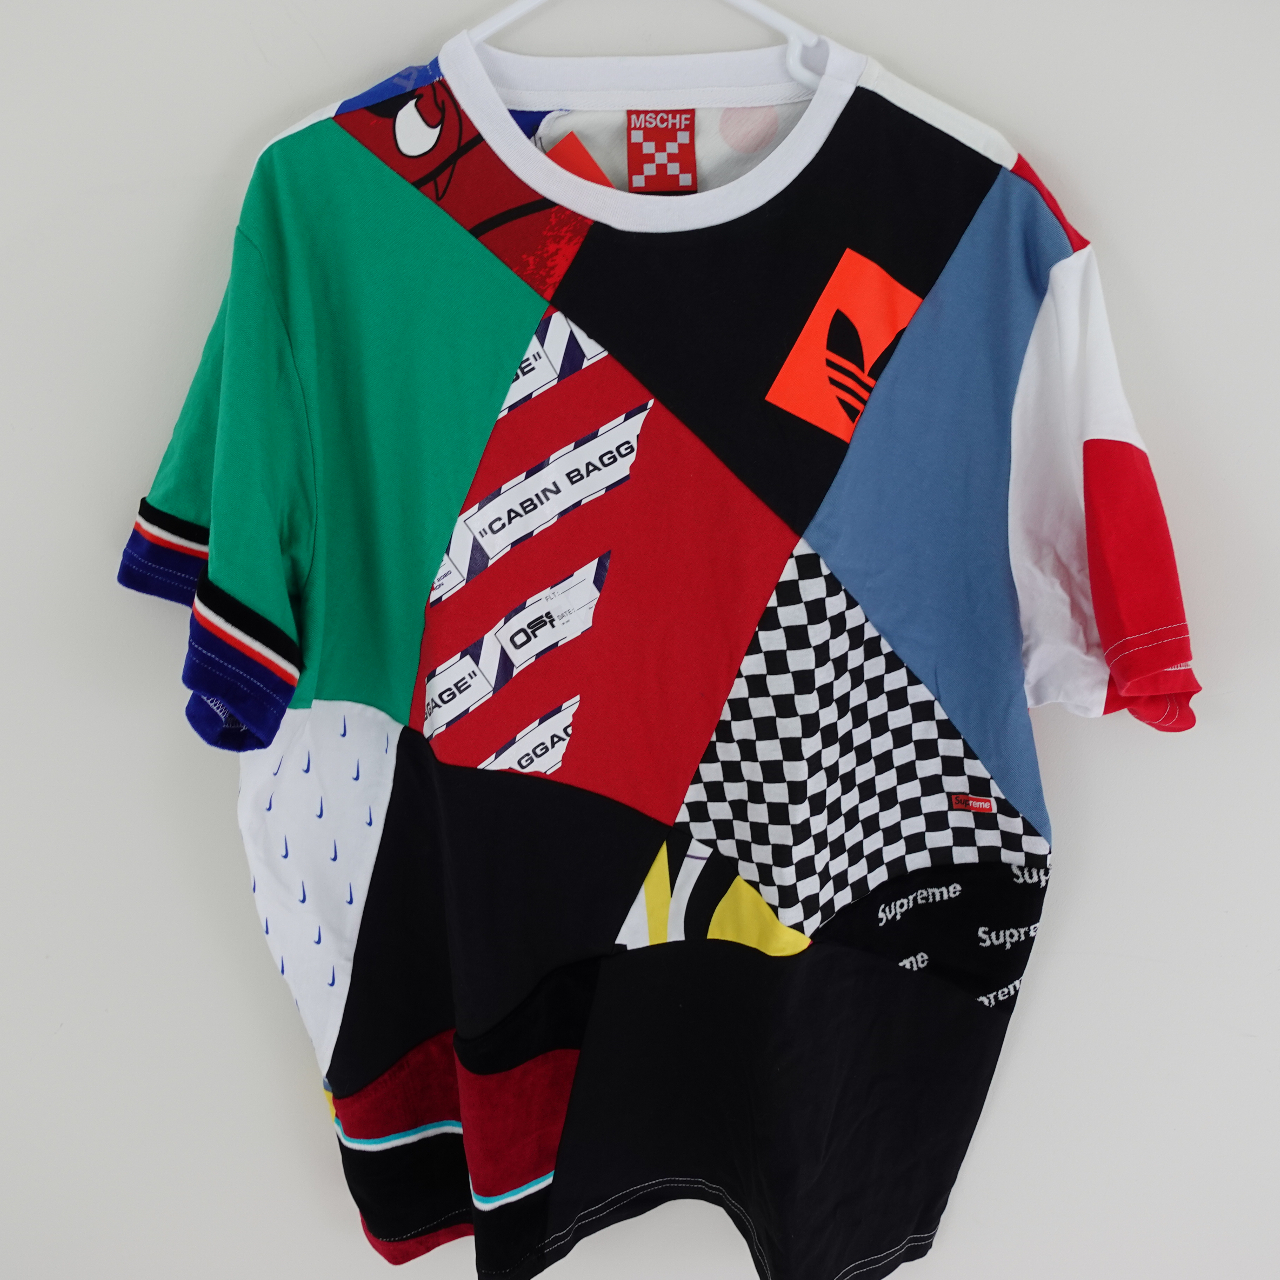 Product Image 1 - MSCHF x Shirt Patchwork of